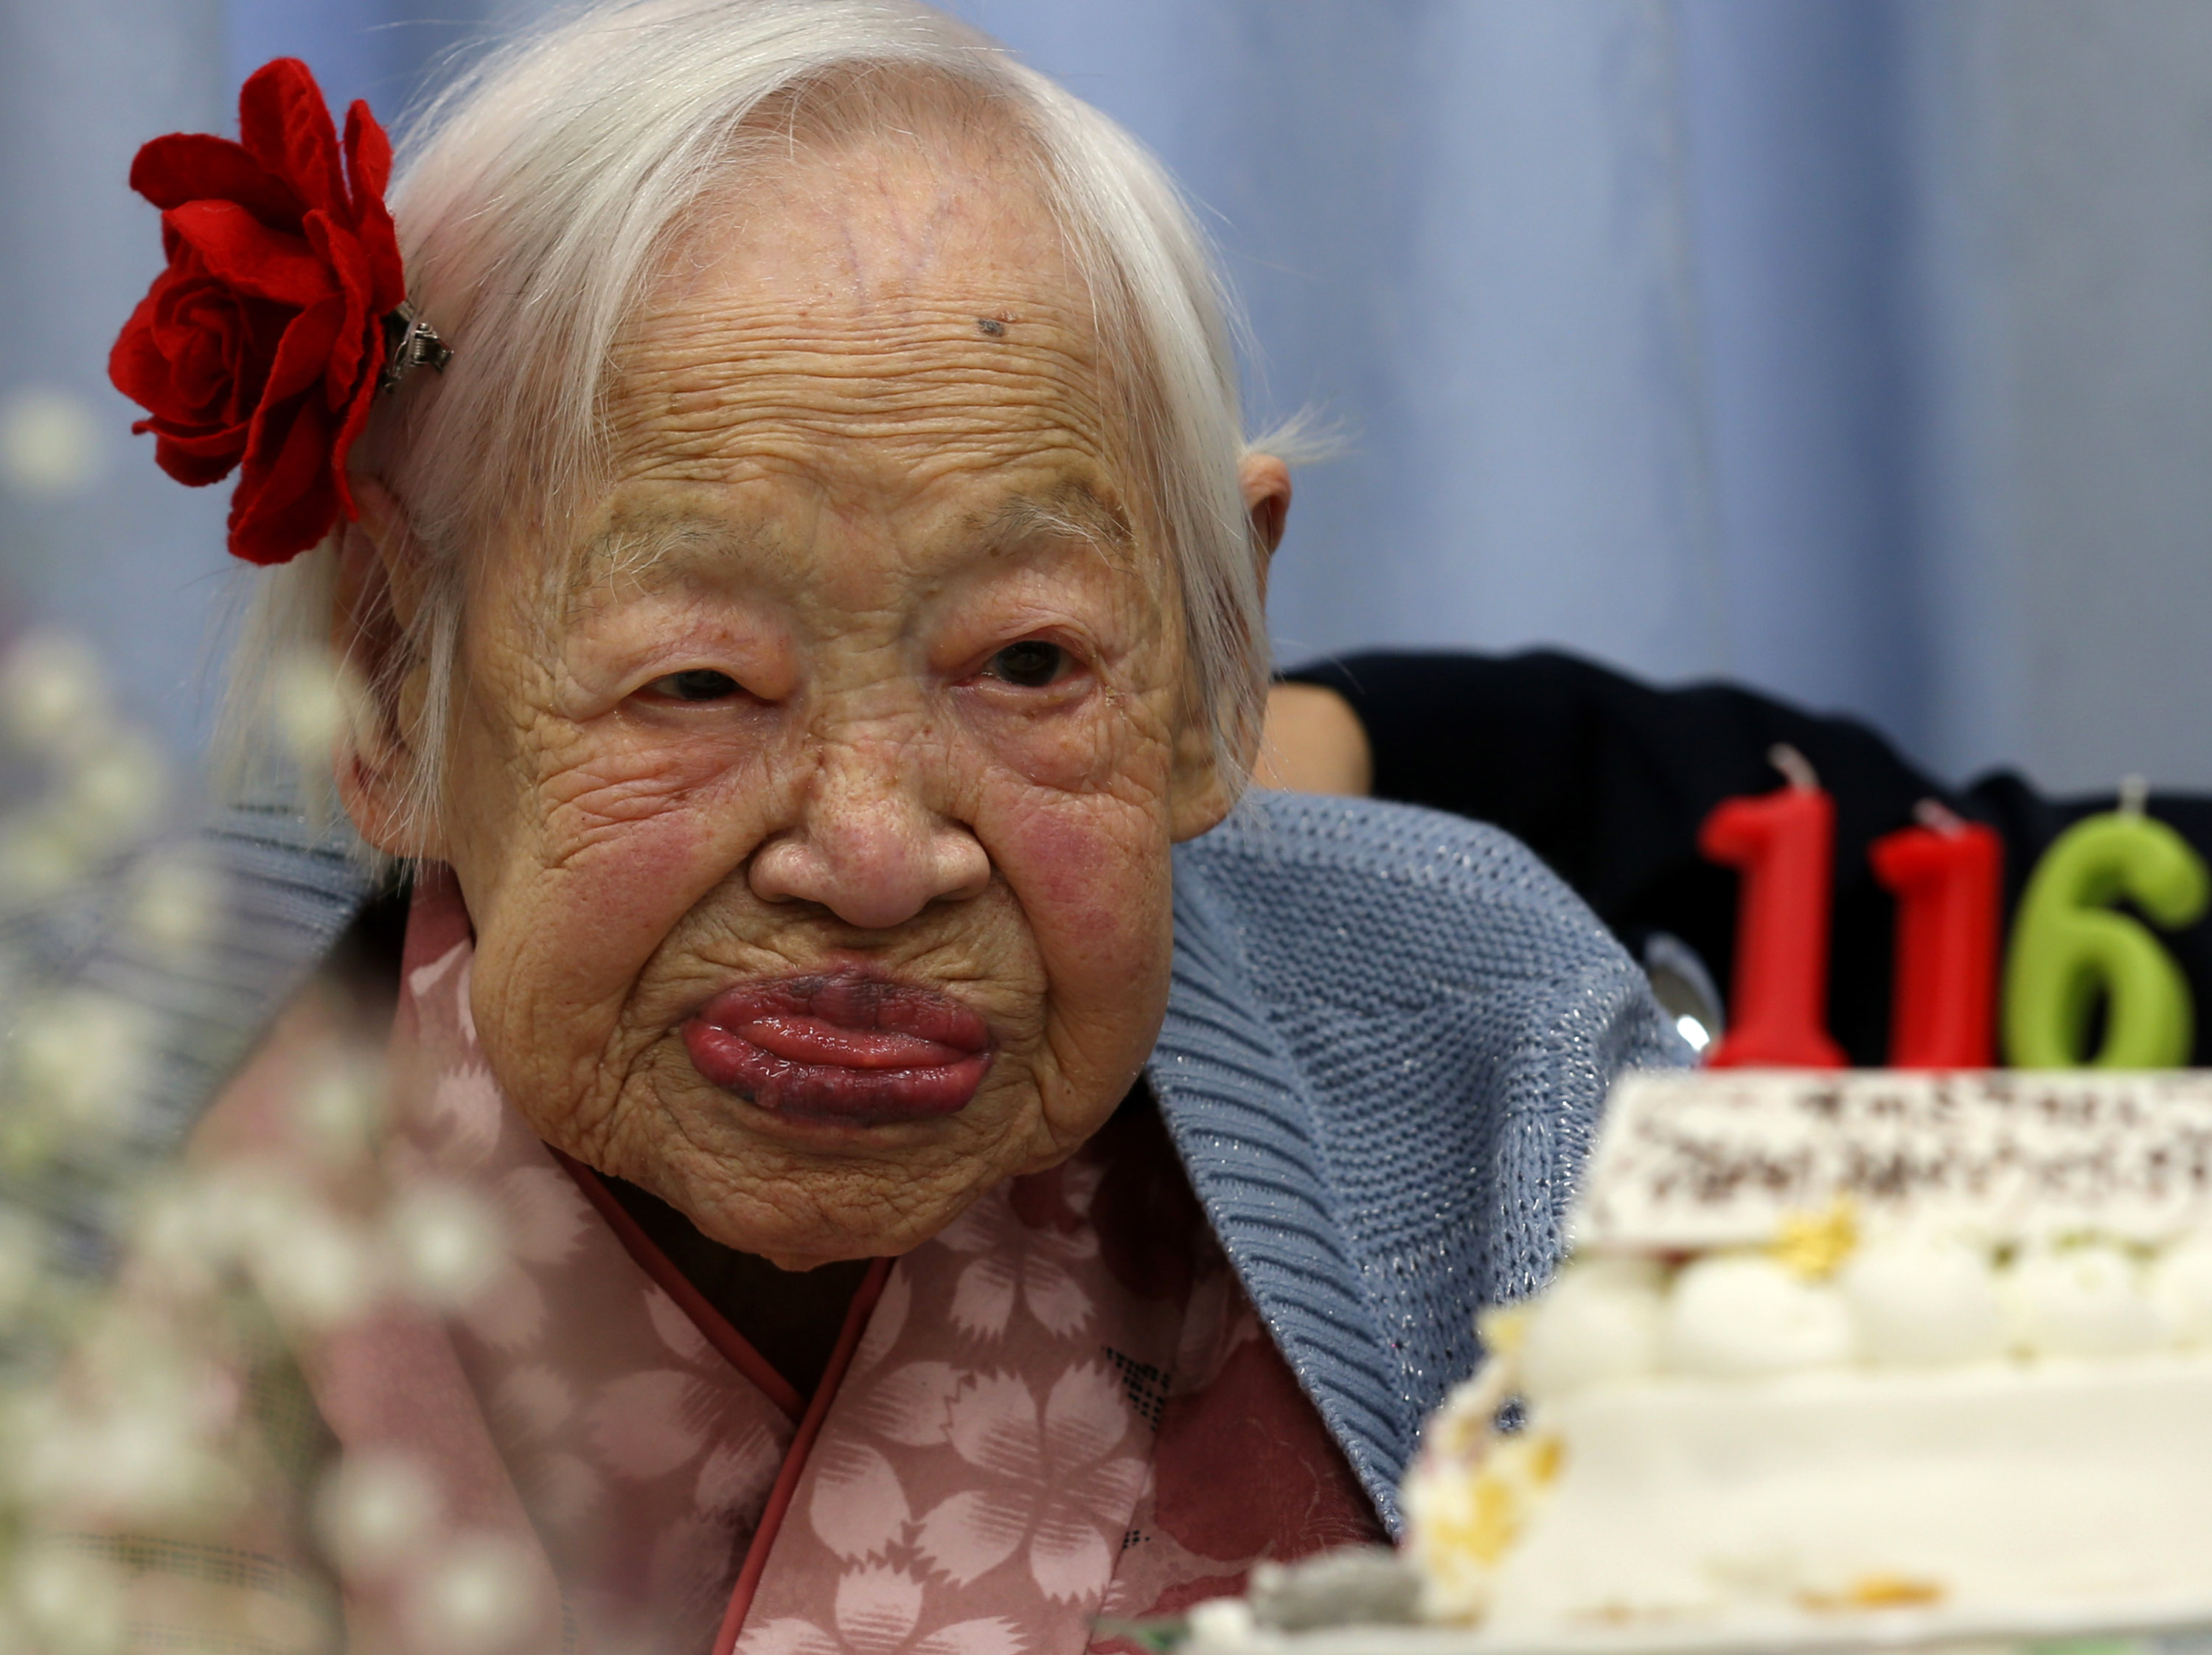 Misao Okawa, the world's oldest living person, looks on her 116th birthday celebration at Kurenai Nursing Home on March 5, 2014 in Osaka, Japan. Okawa, born in Tenma, Osaka, on March 5, 1898 to a family of Kimono merchants, married in 1919 and had three children, of which a daughter and a son are still alive, and has four grandchildren and six great-grandchildren. Okawa is currently 116 years old.